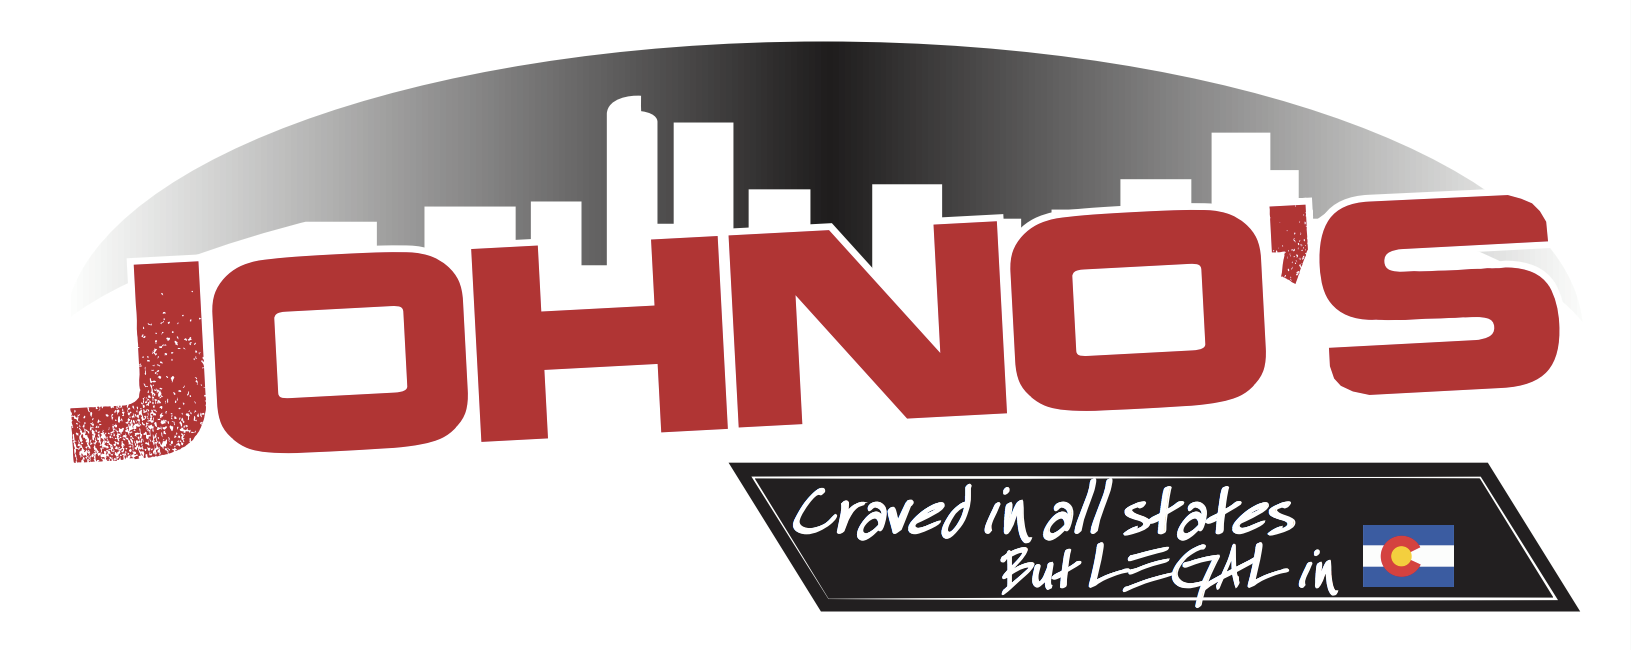 Johno's Food Truck logo